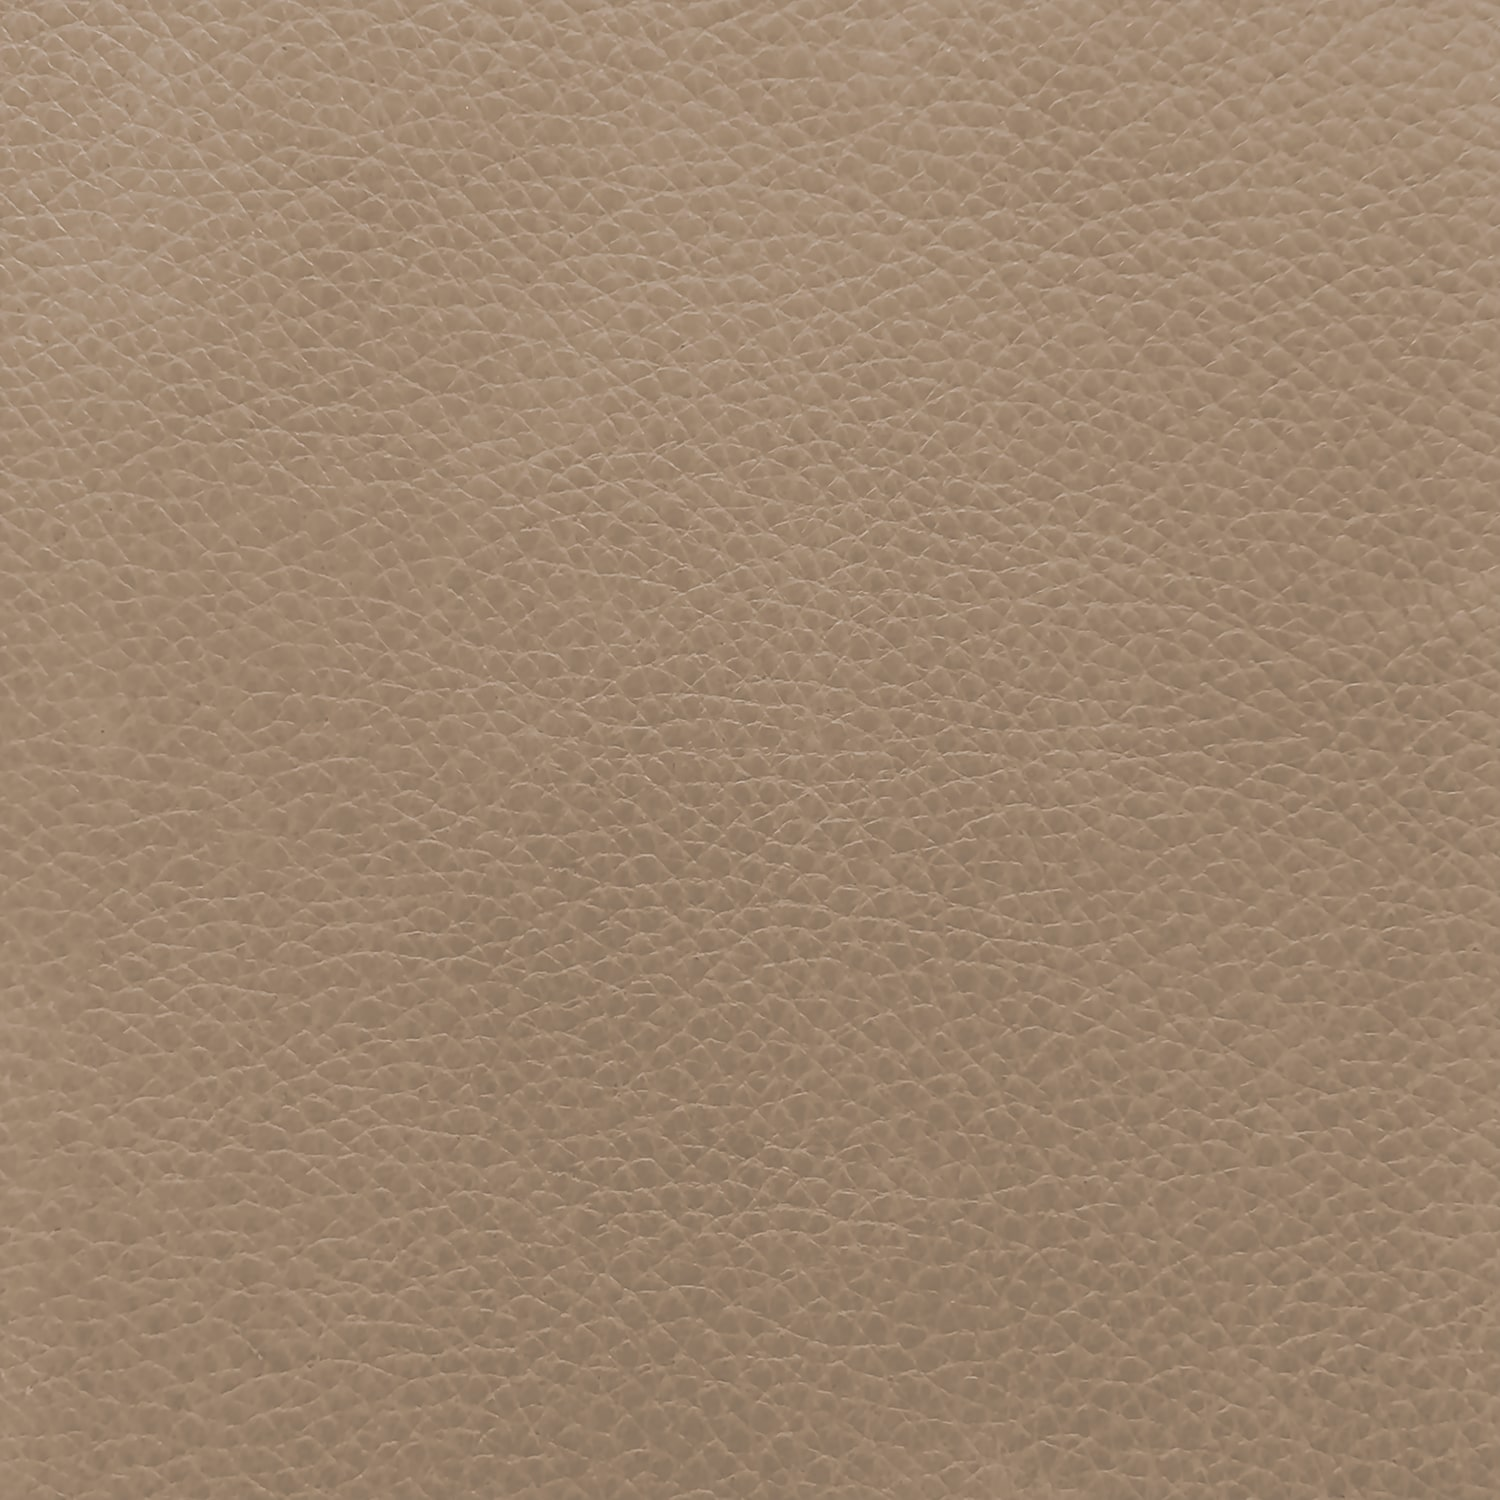 Haven: Champagne (grade G): #HAV6013<br>Thick, soft, rich translucent die with some natural hide characteristics; light protection